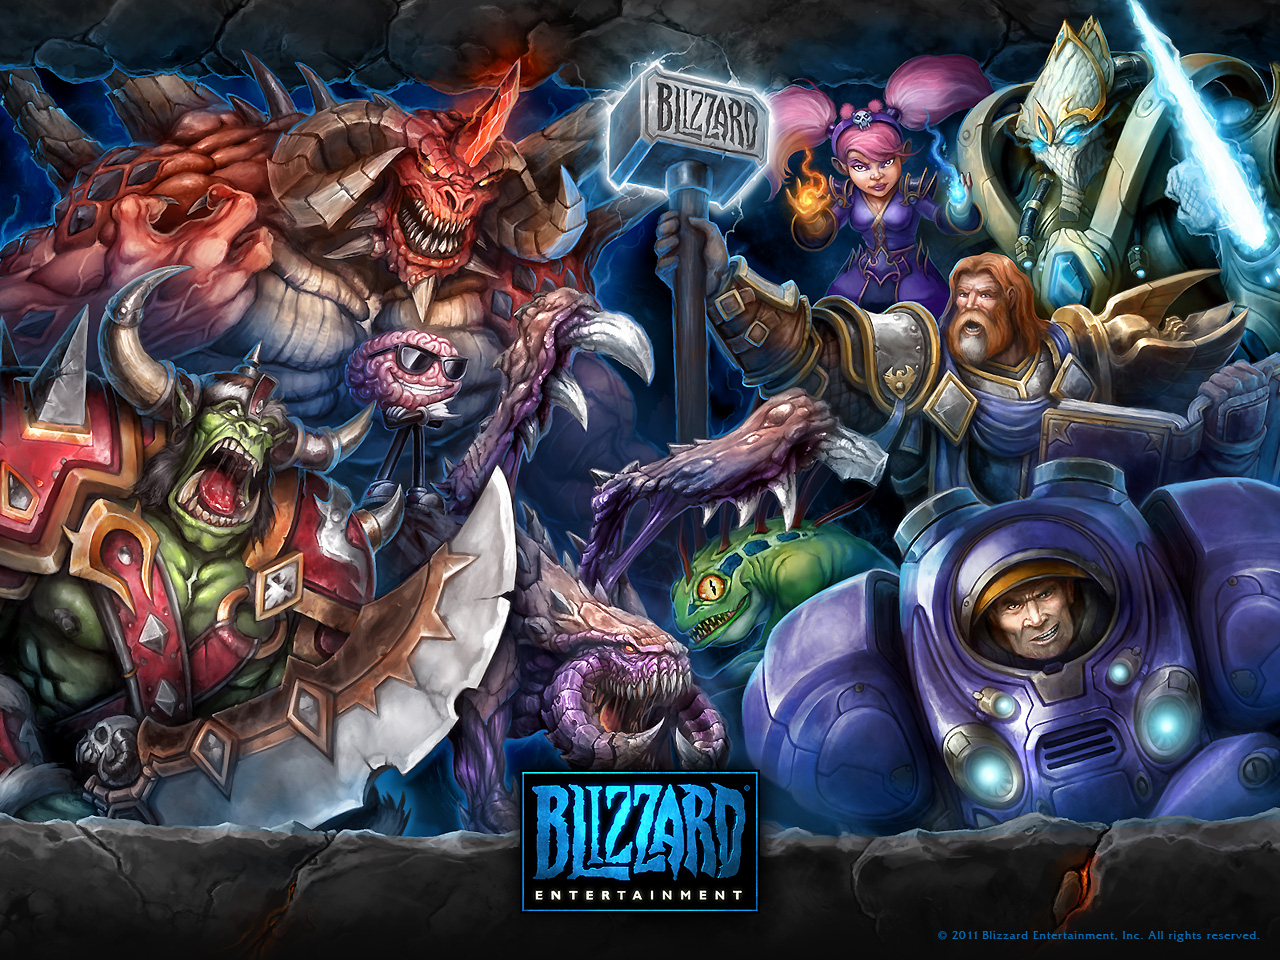 Blizzard Entertainment Wallpaper 1280x960 Blizzard Entertainment 1280x960